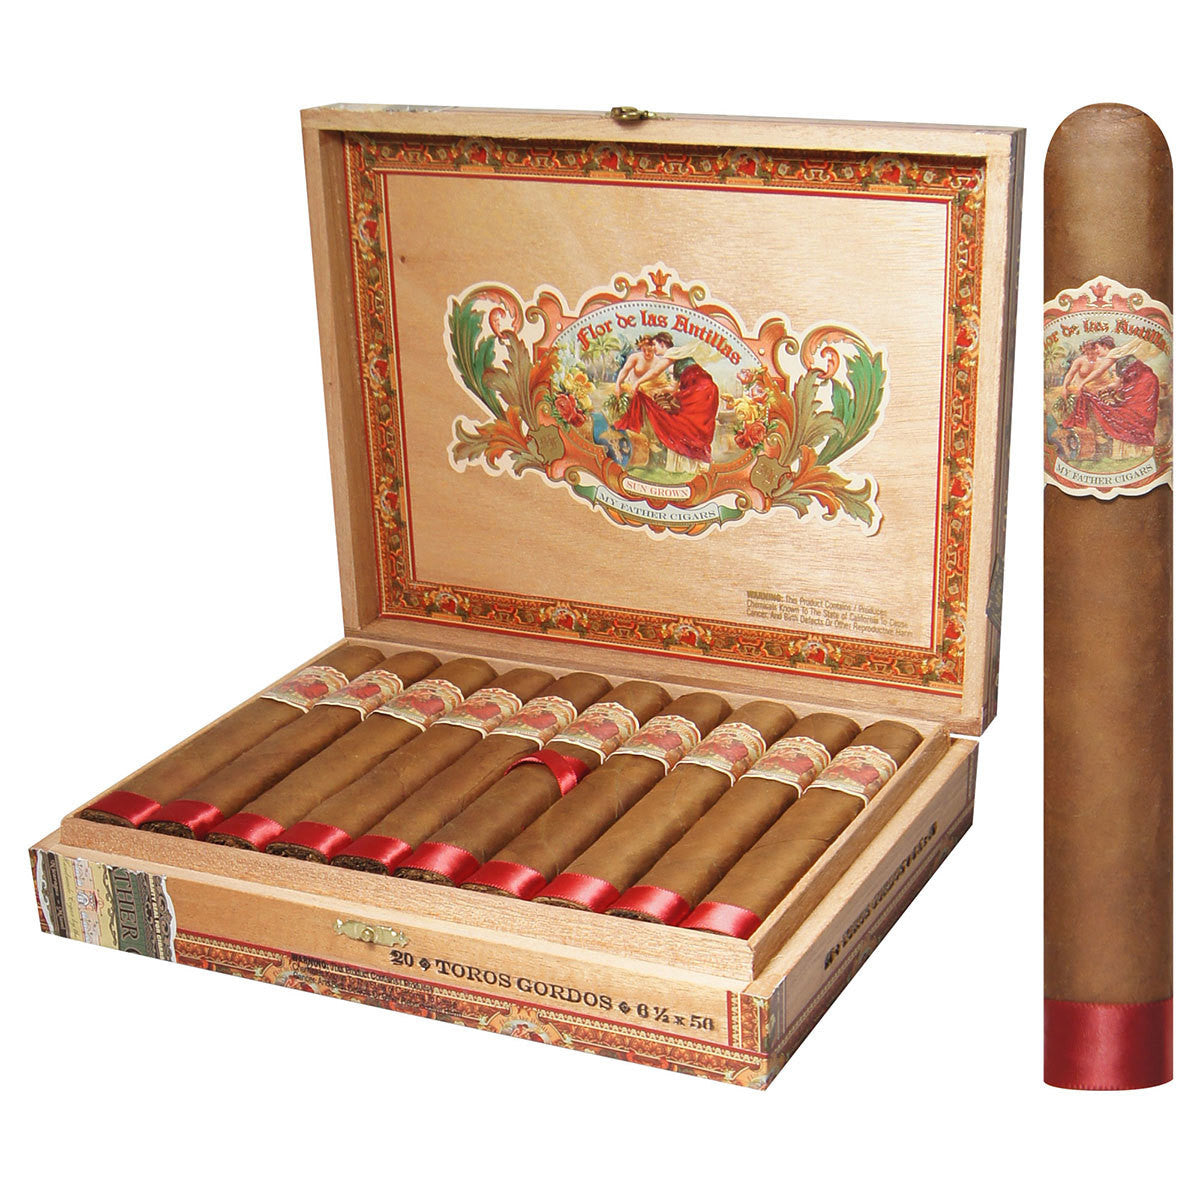 Flor de las Antillas Cigars Box of 20 - Cigar boulevard